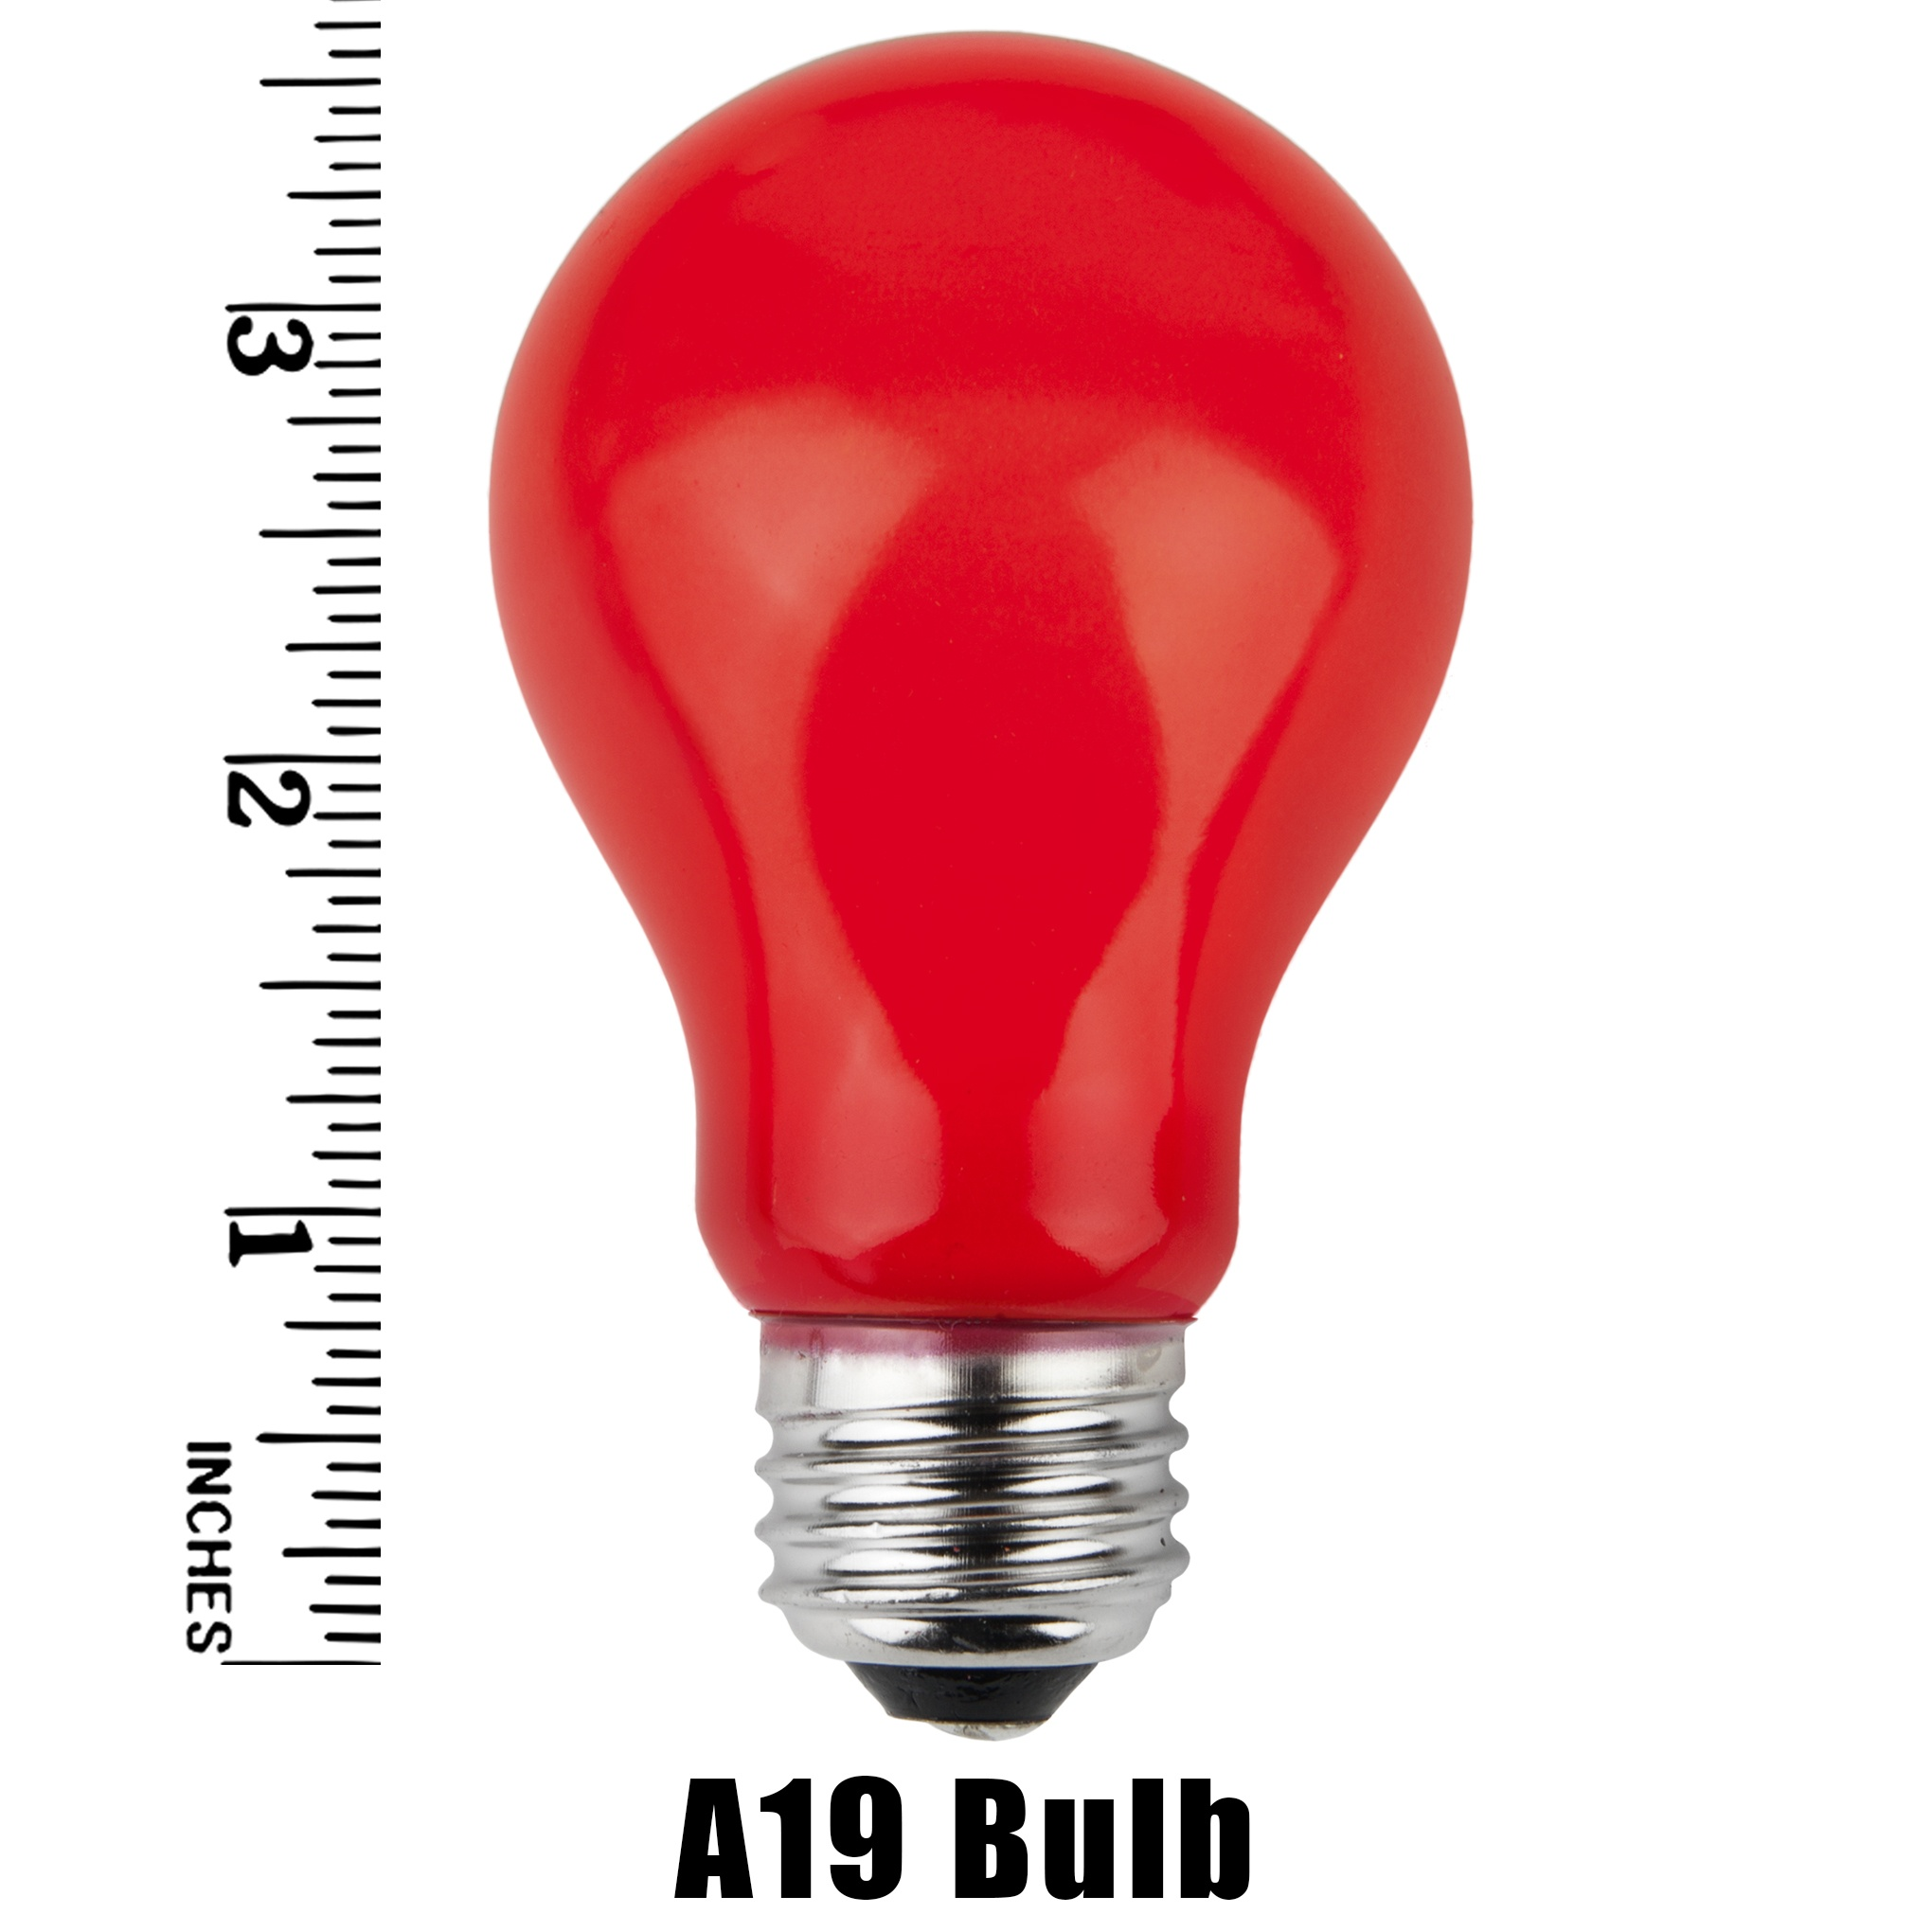 A19 Multicolored Opaque Incandescent Bulb Measurement